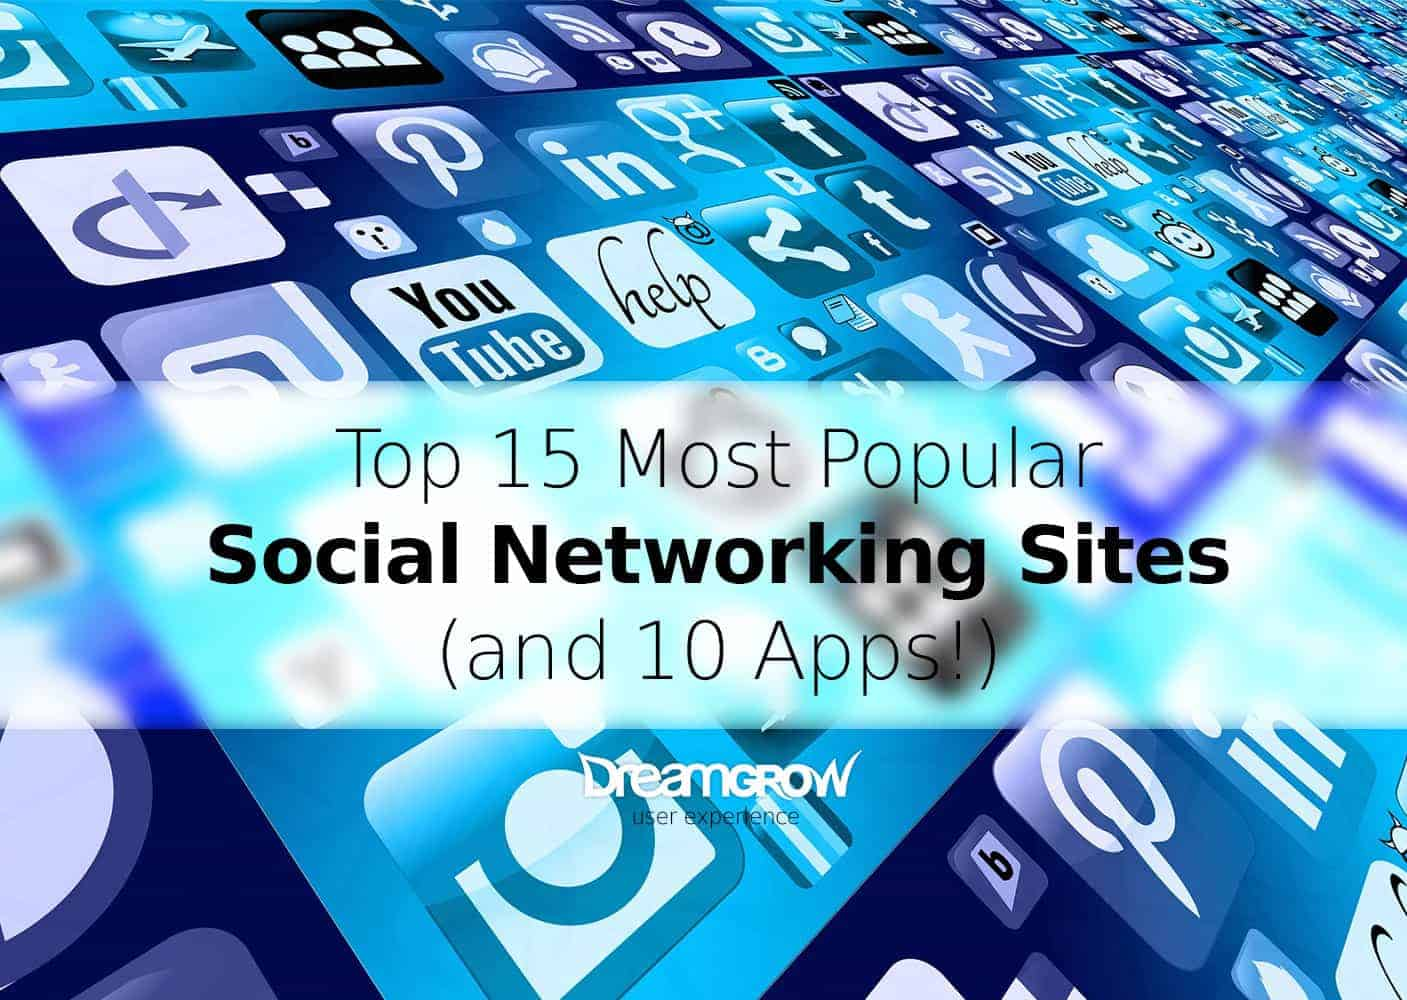 content most popular social networking sites world